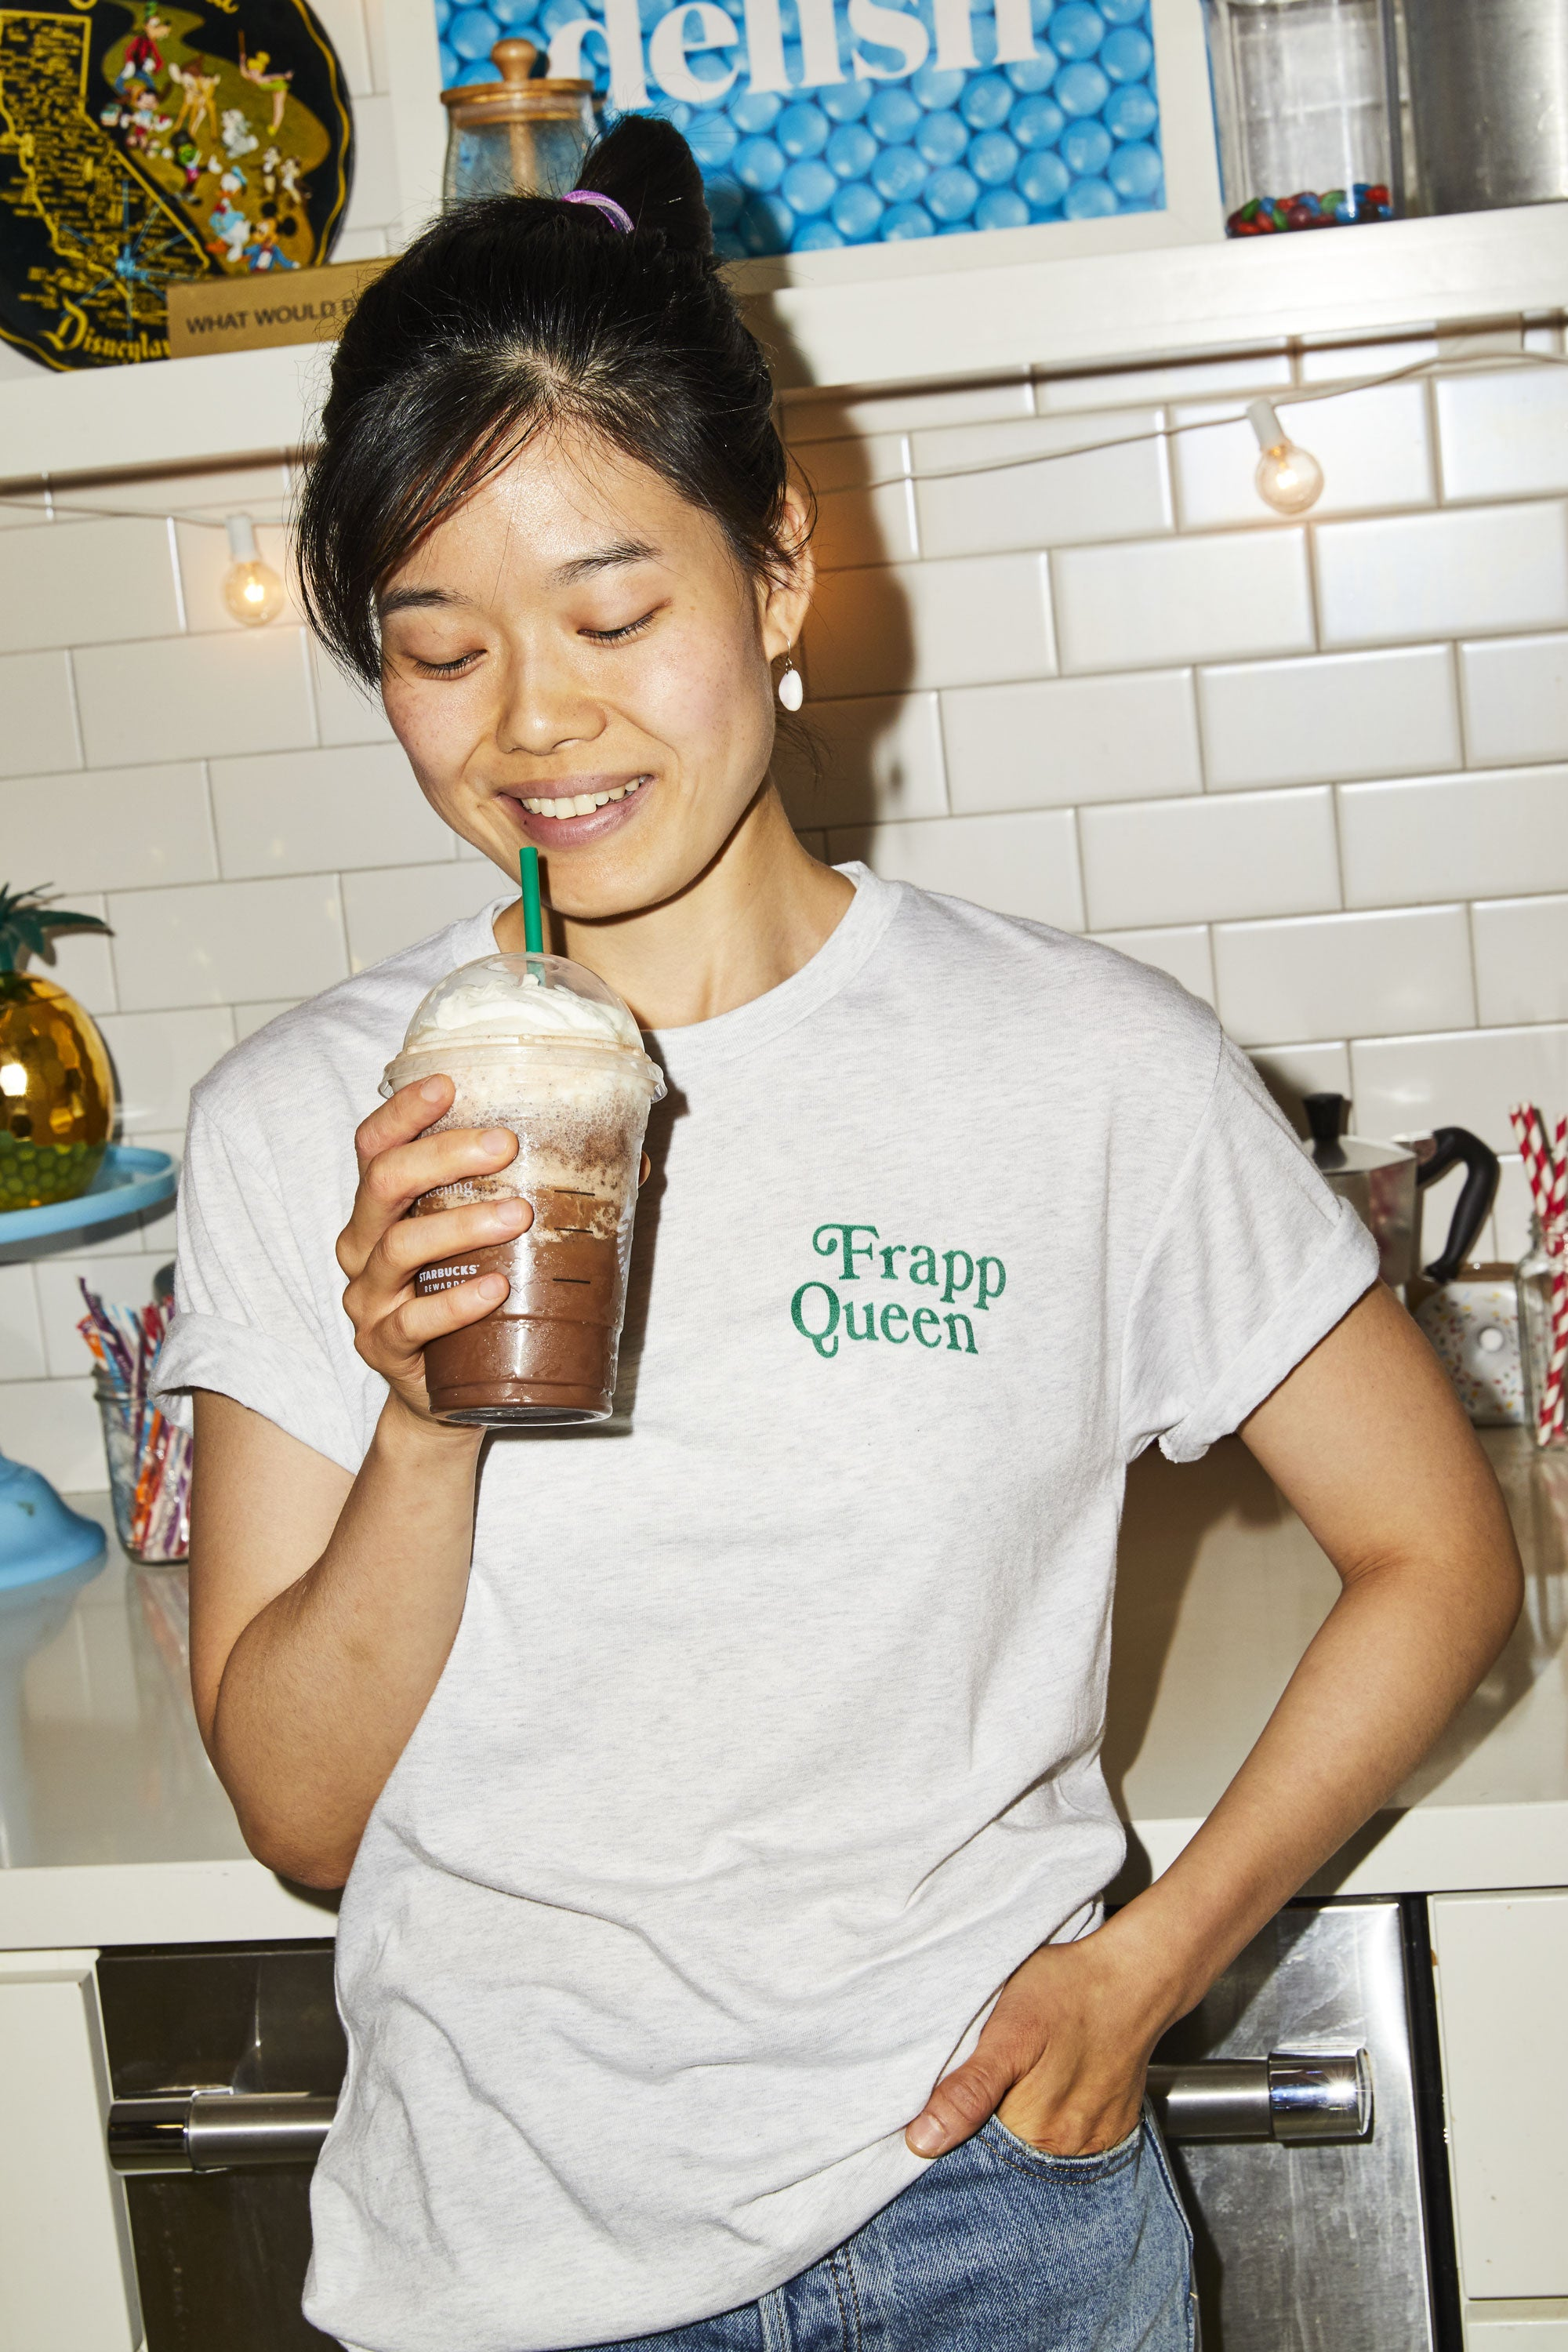 Frapp Queen T-Shirt